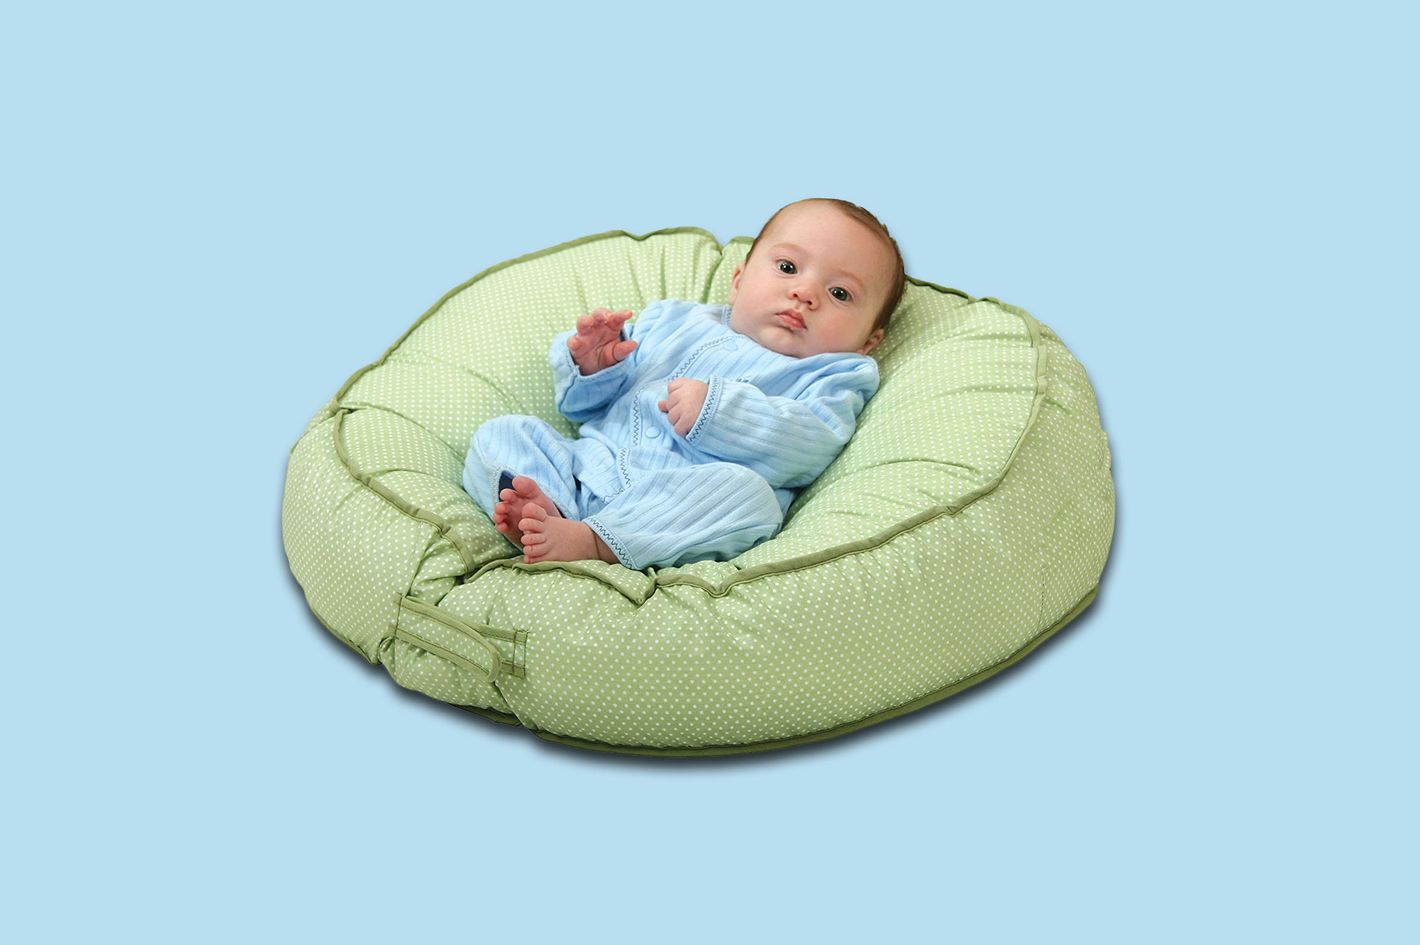 Baby bean bag chair - This Baby Is Happier Than He Looks